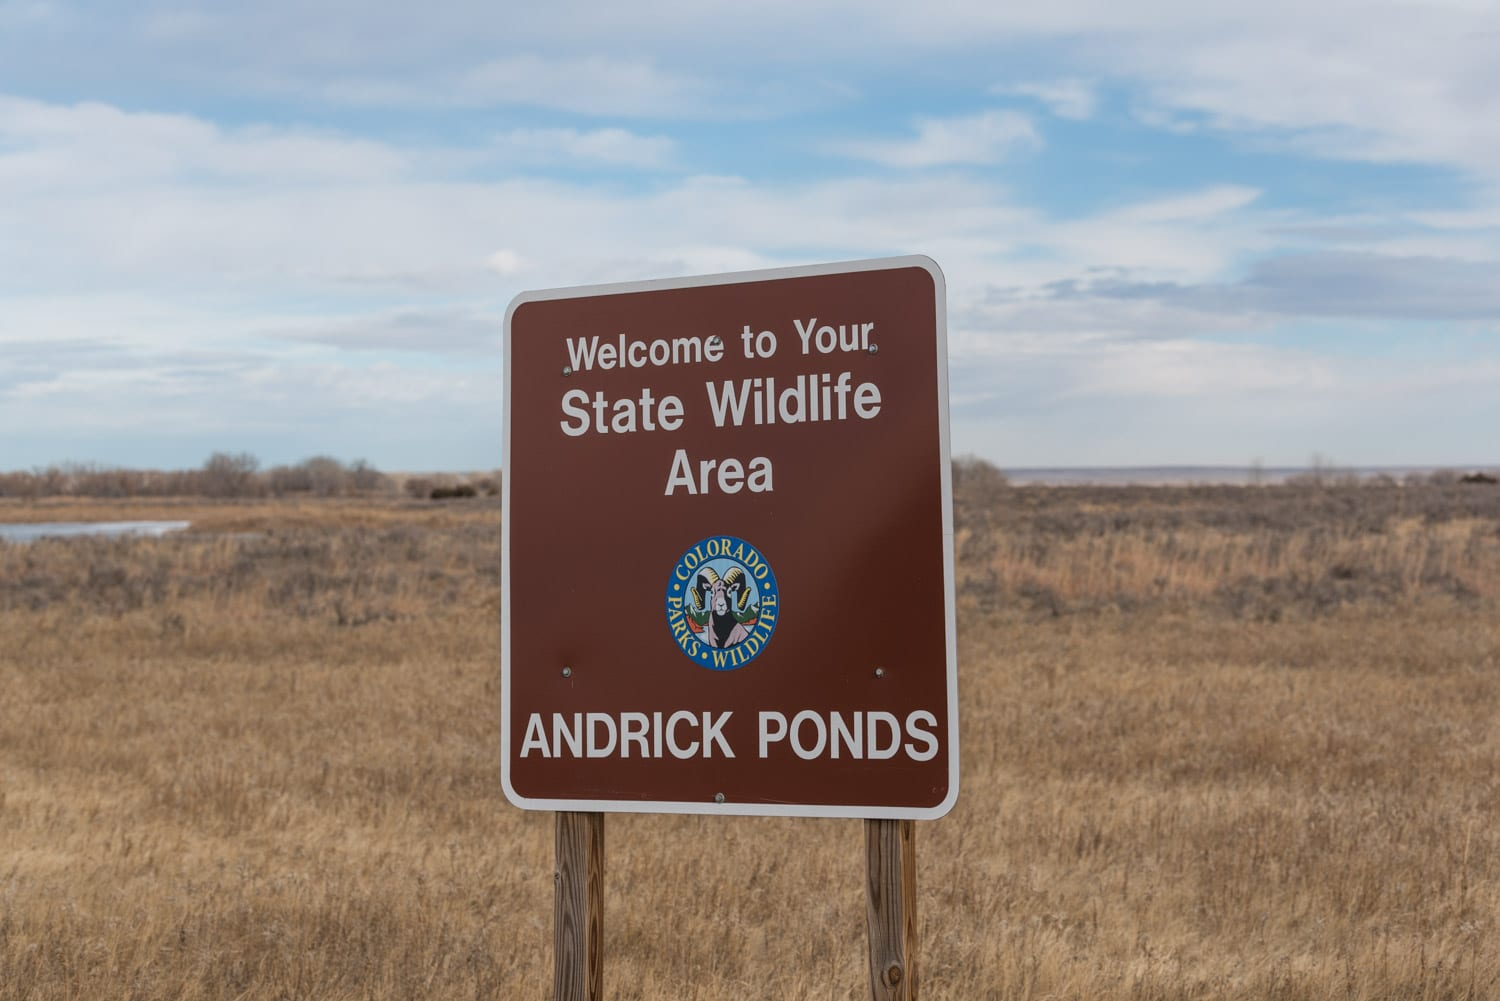 image of Andrick Ponds in Orchard, CO